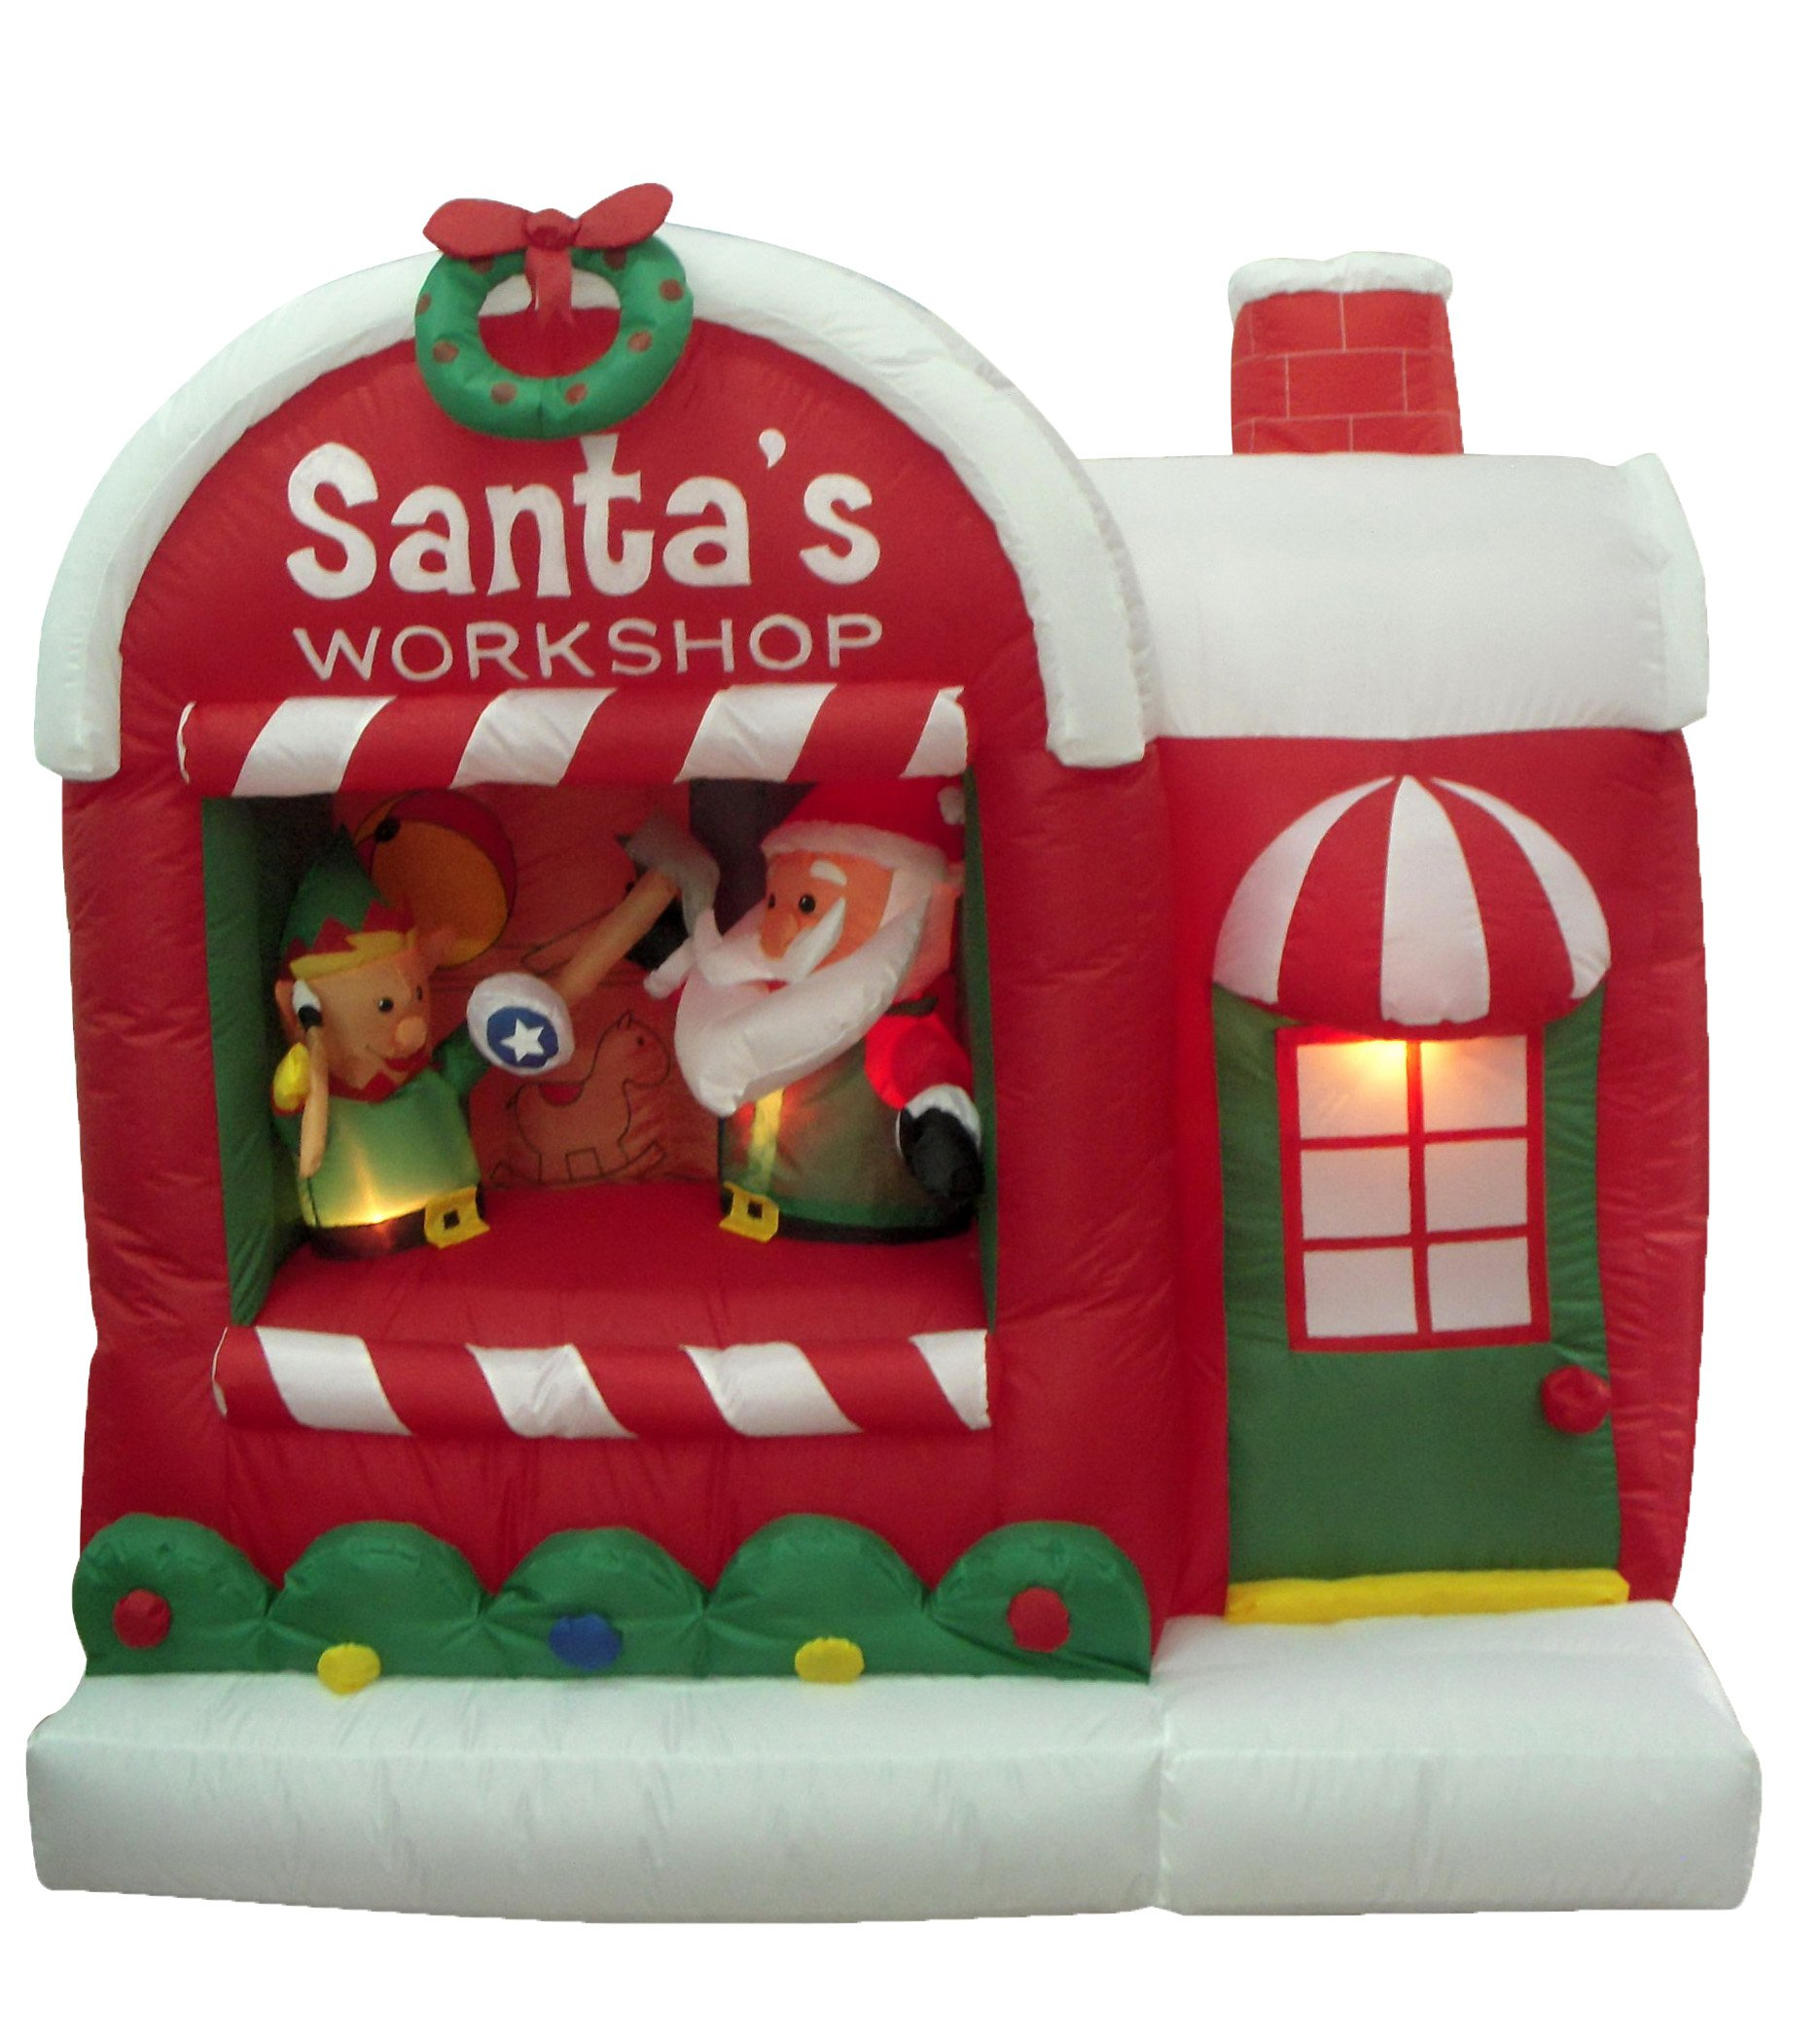 5 Foot Christmas Inflatable Santa Claus Workshop Yard Decoration by BZB Goods